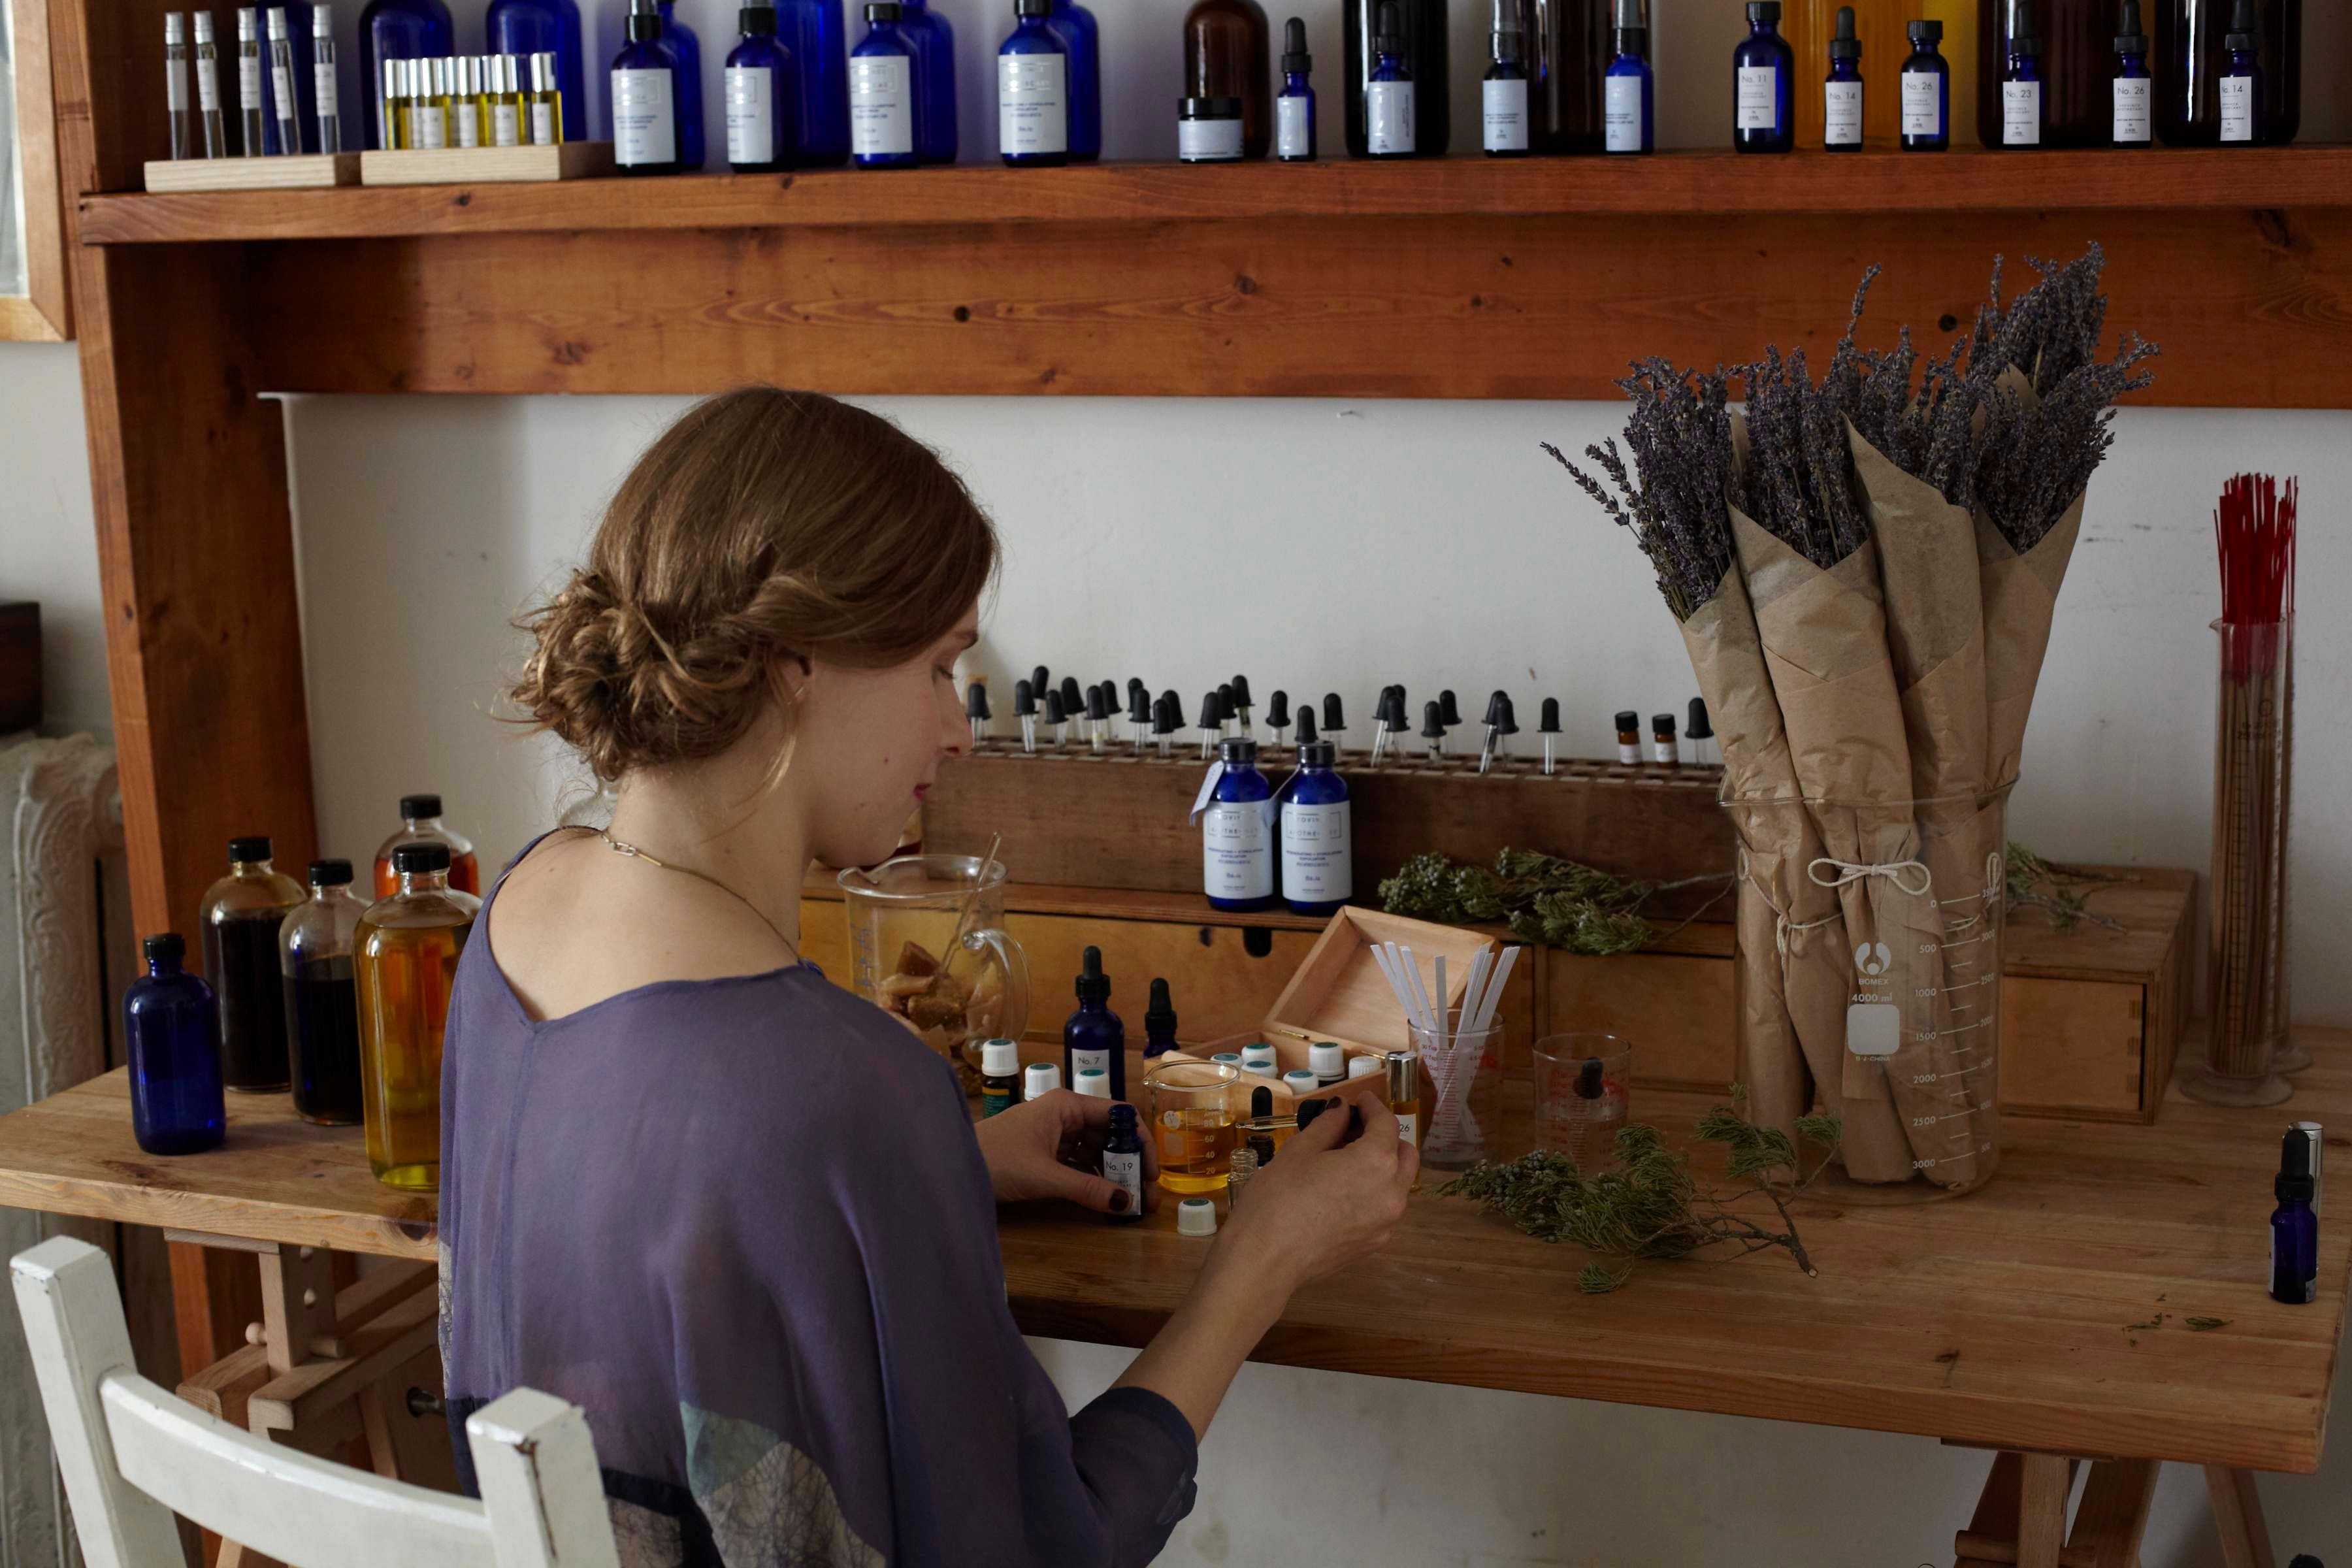 Julie Clarke at a desk preparing a product for her skincare line Province Apothecary.